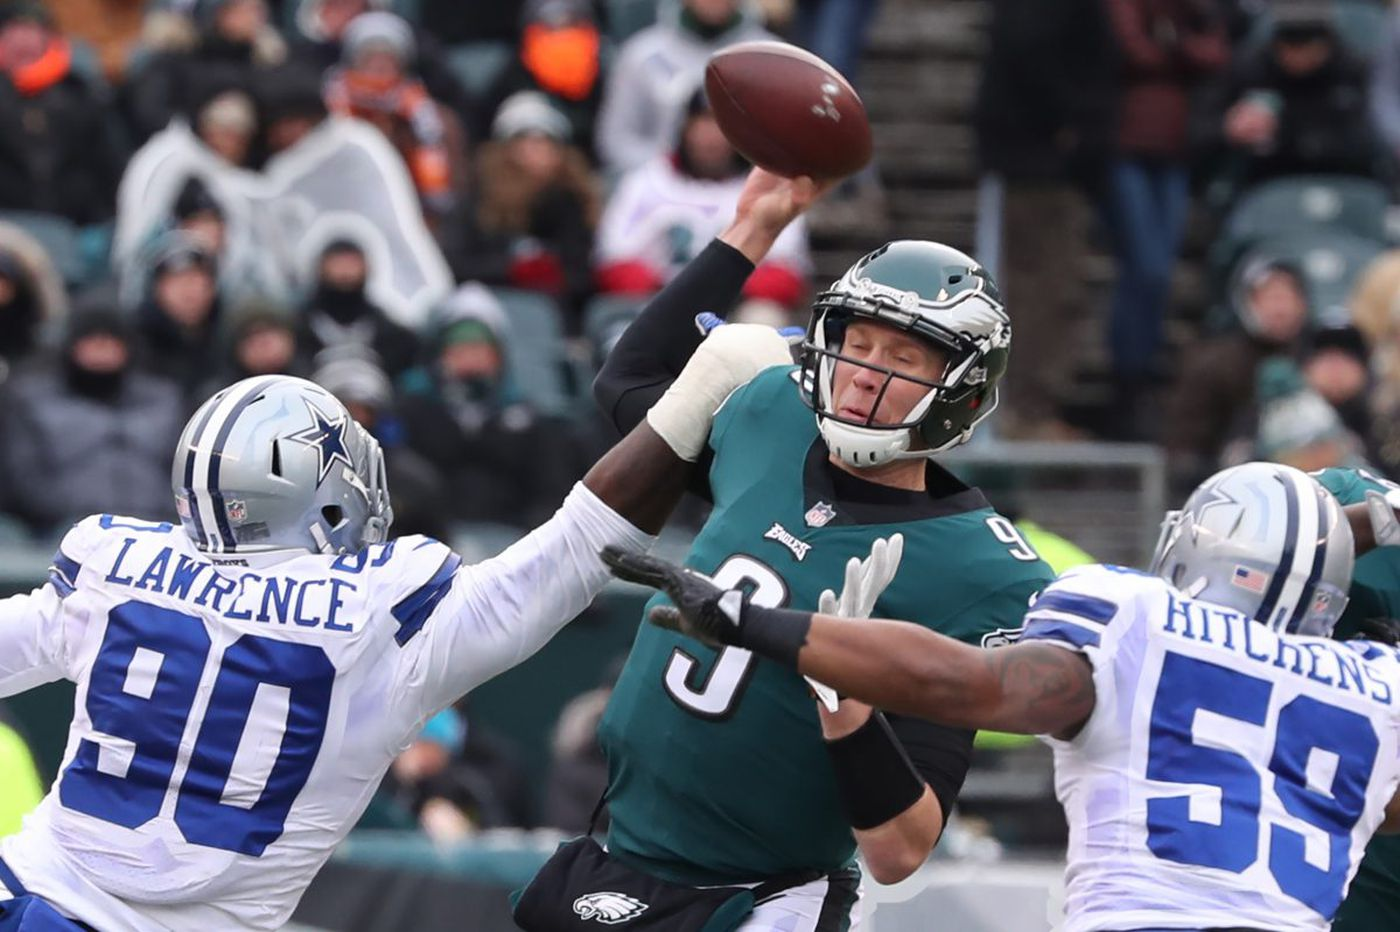 Eagles QB Nick Foles is better than what he's shown these last two games | Early Birds